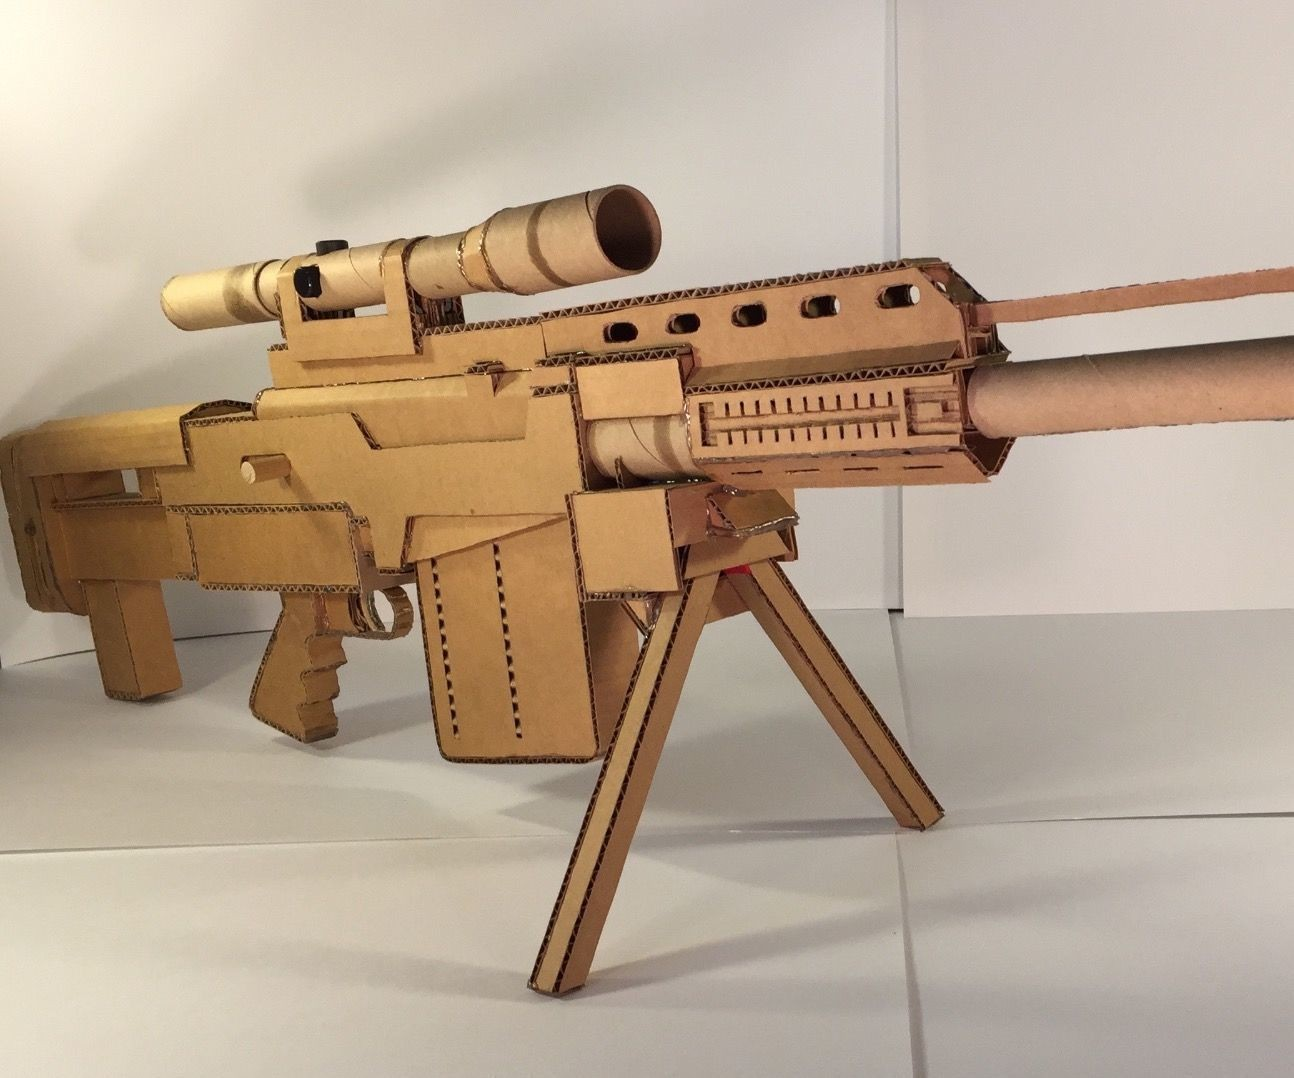 Papercraft Revolver Fully Functioning Cardboard as 50 Sniper Rifle